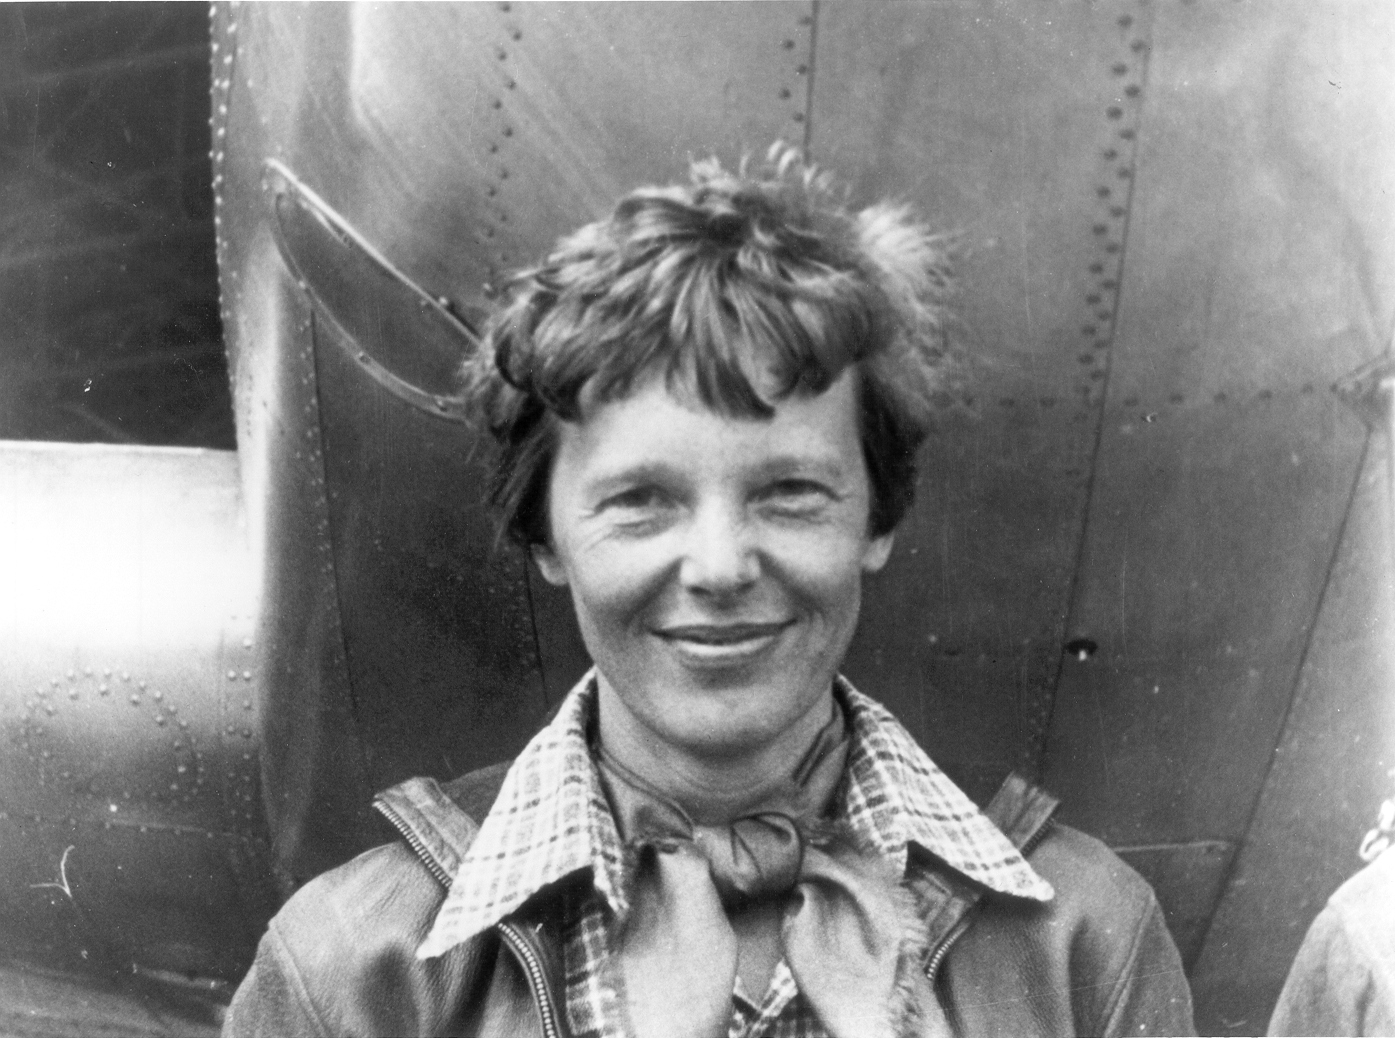 Amelia Earhart Courtesy Wikimedia as well as Underwood & Underwood --Public Domain--